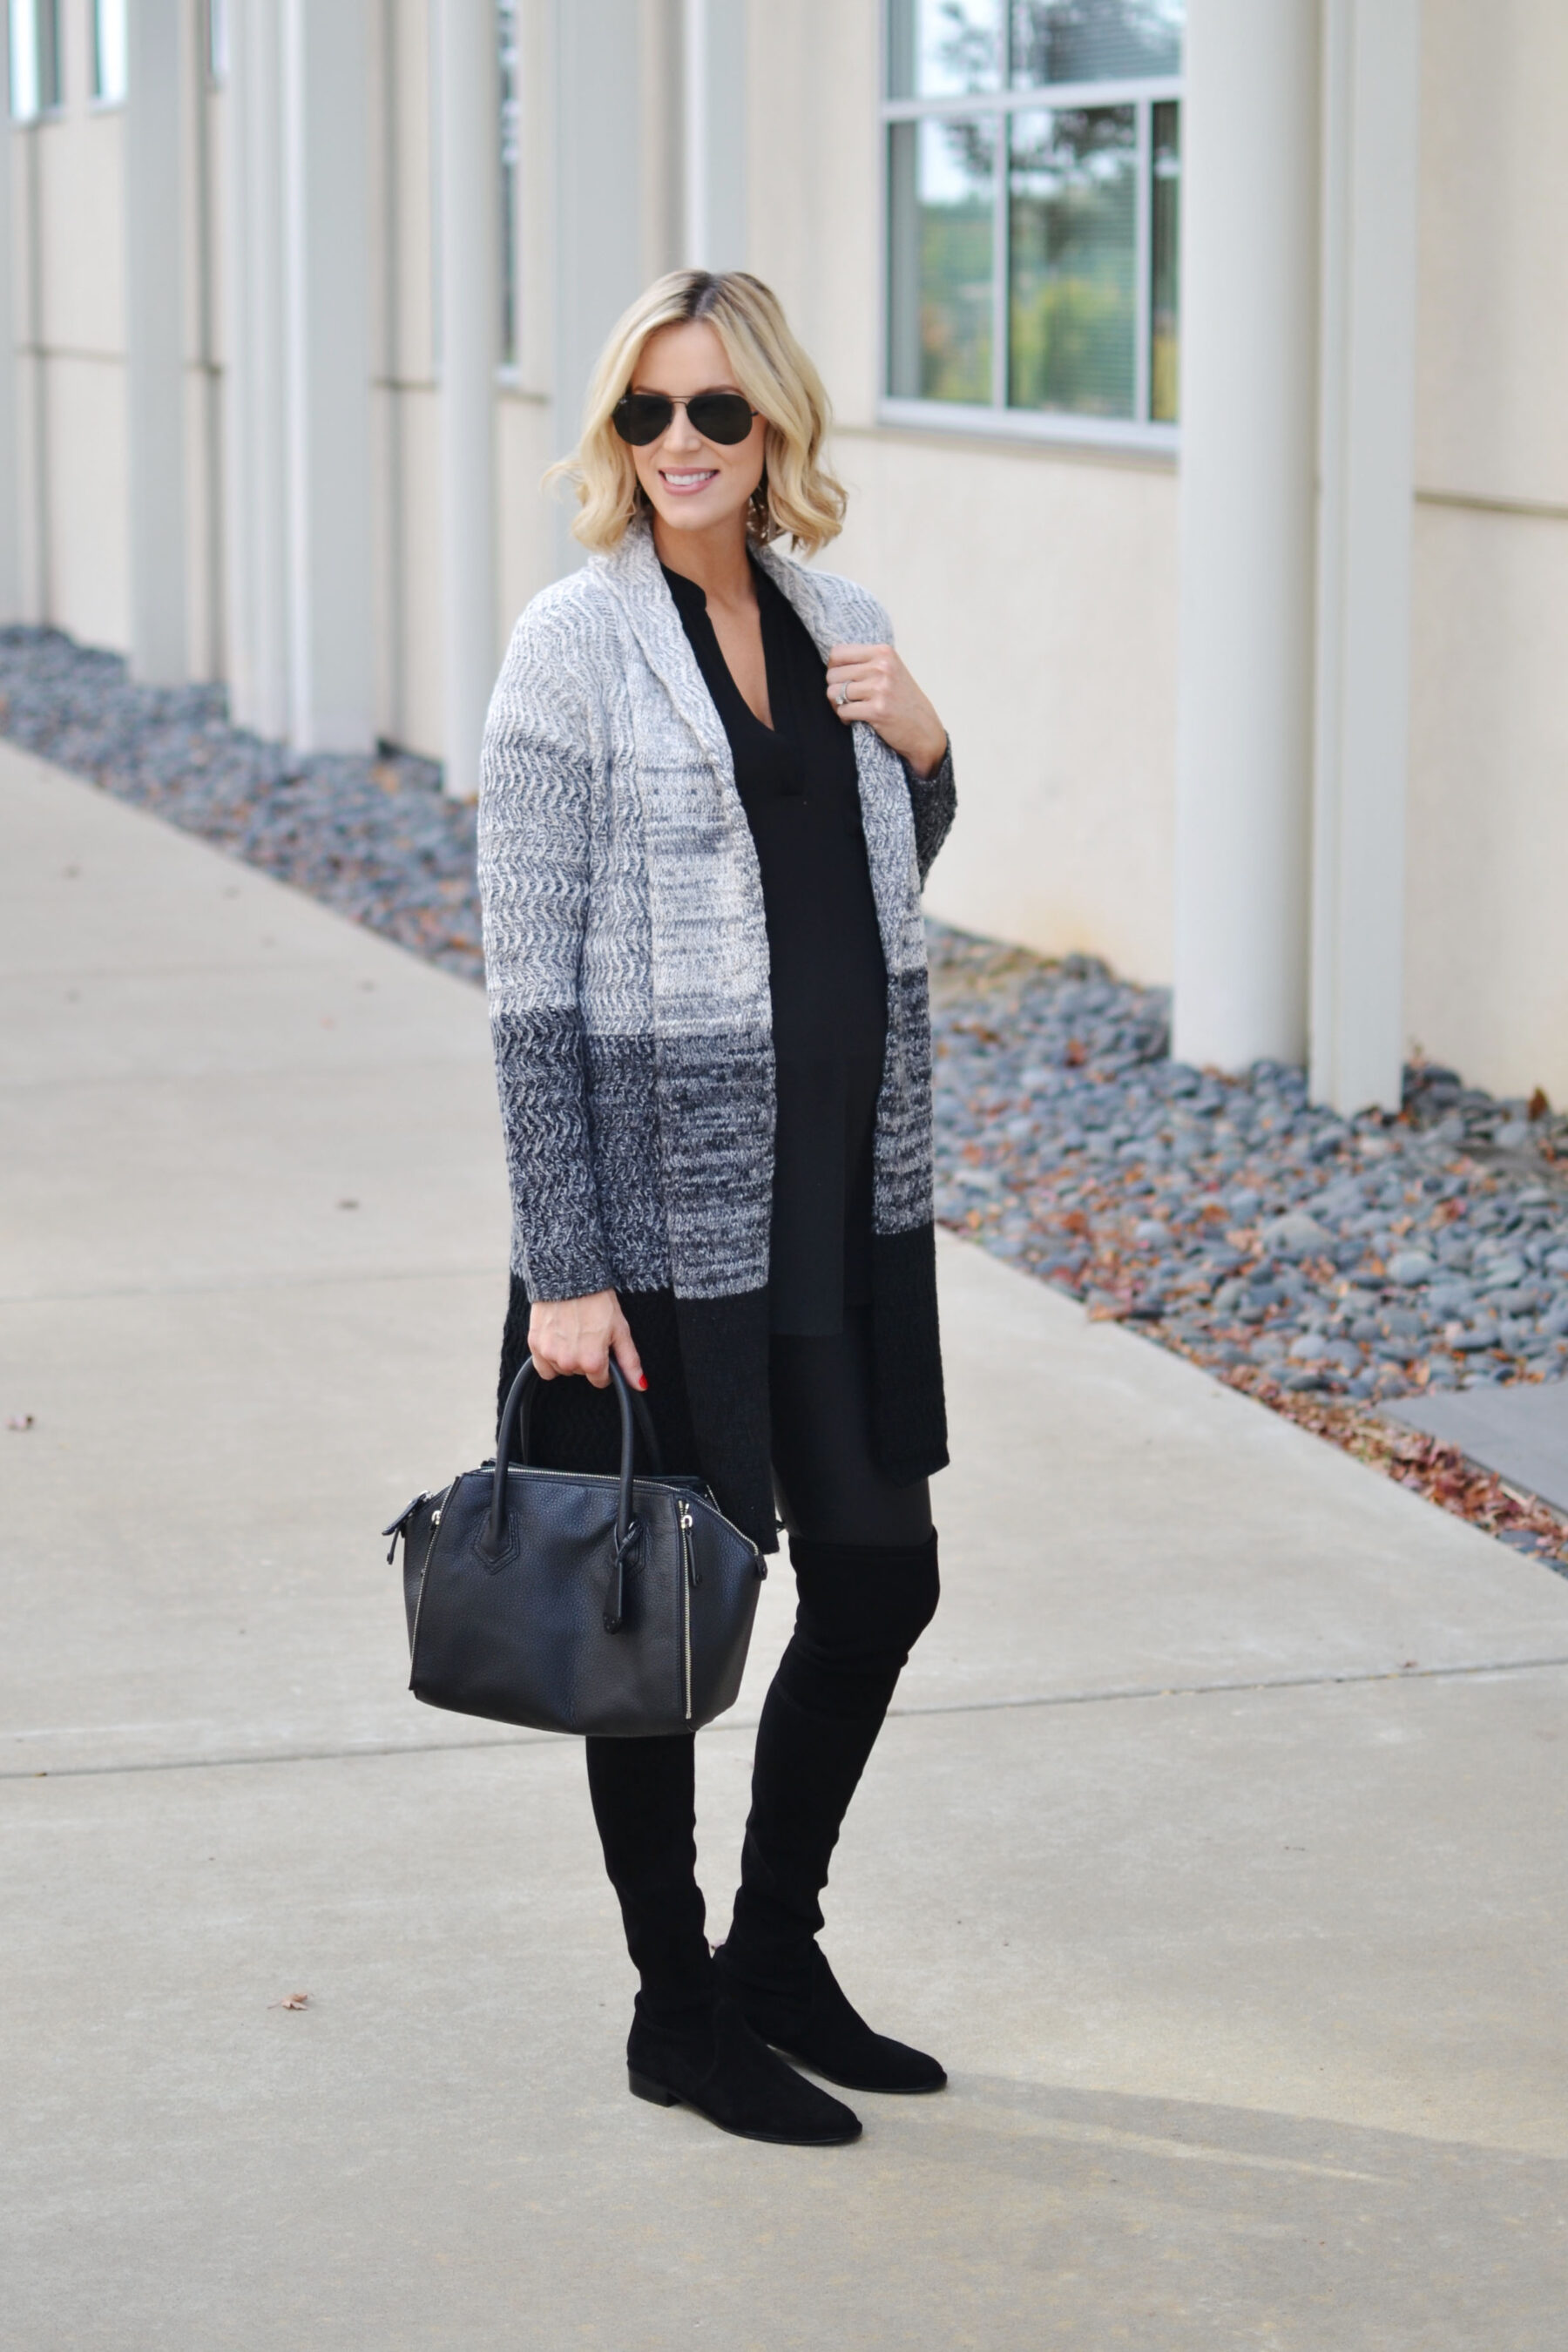 829dd6033a How to Style Faux Leather Leggings – with a tunic and ankle boots (post  here)